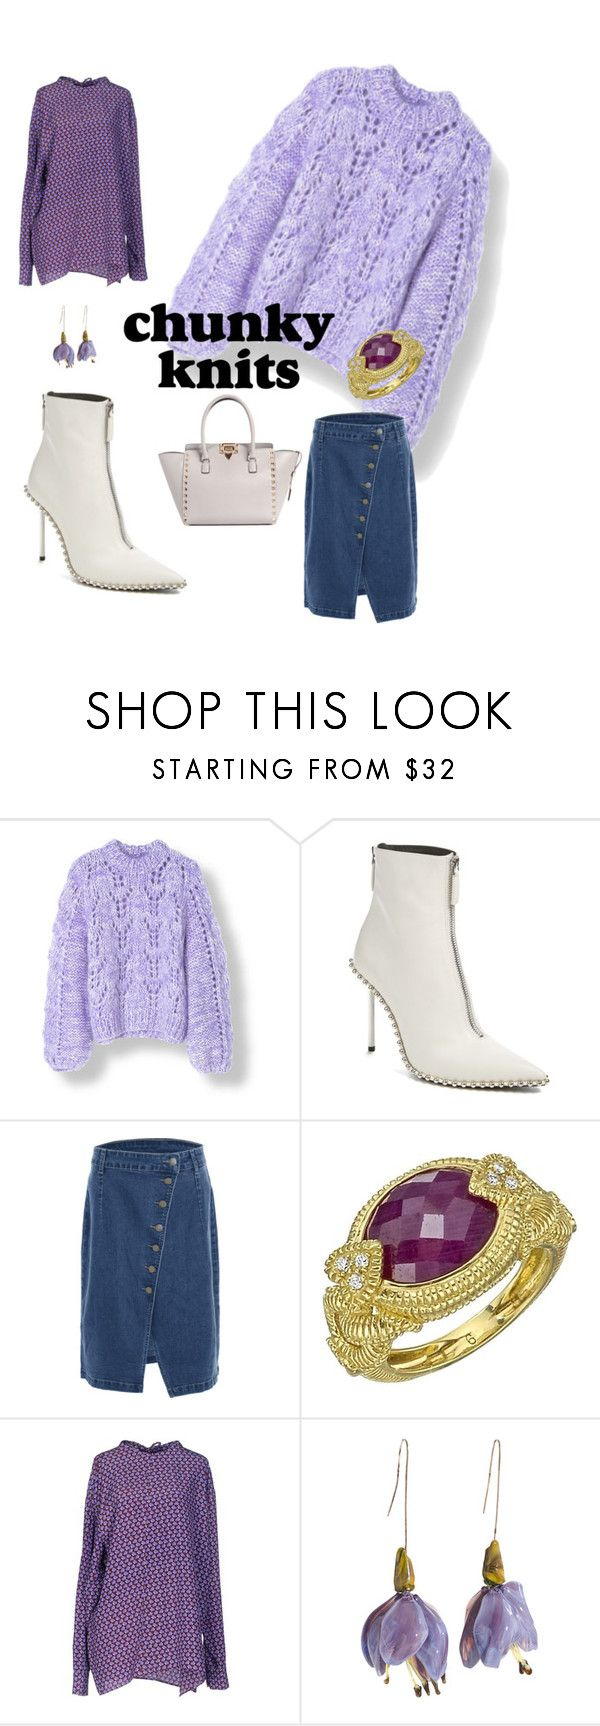 """Warm up"" by blumbeeno on Polyvore featuring Alexander Wang, Judith Ripka, Marni and Valentino"